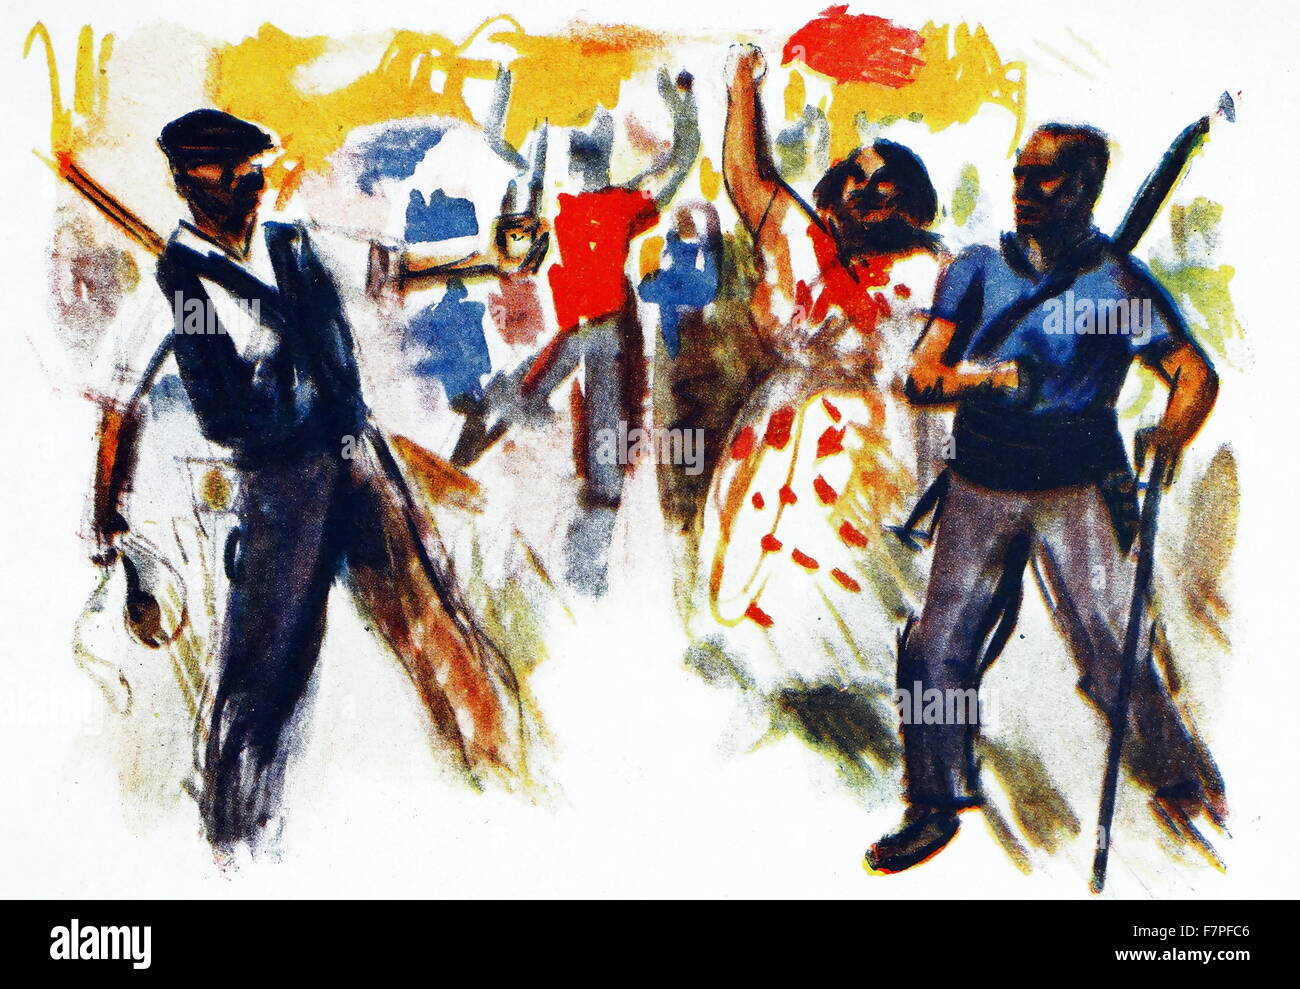 Communists celebrate a victory during the Spanish Civil War 1937 - Stock Image